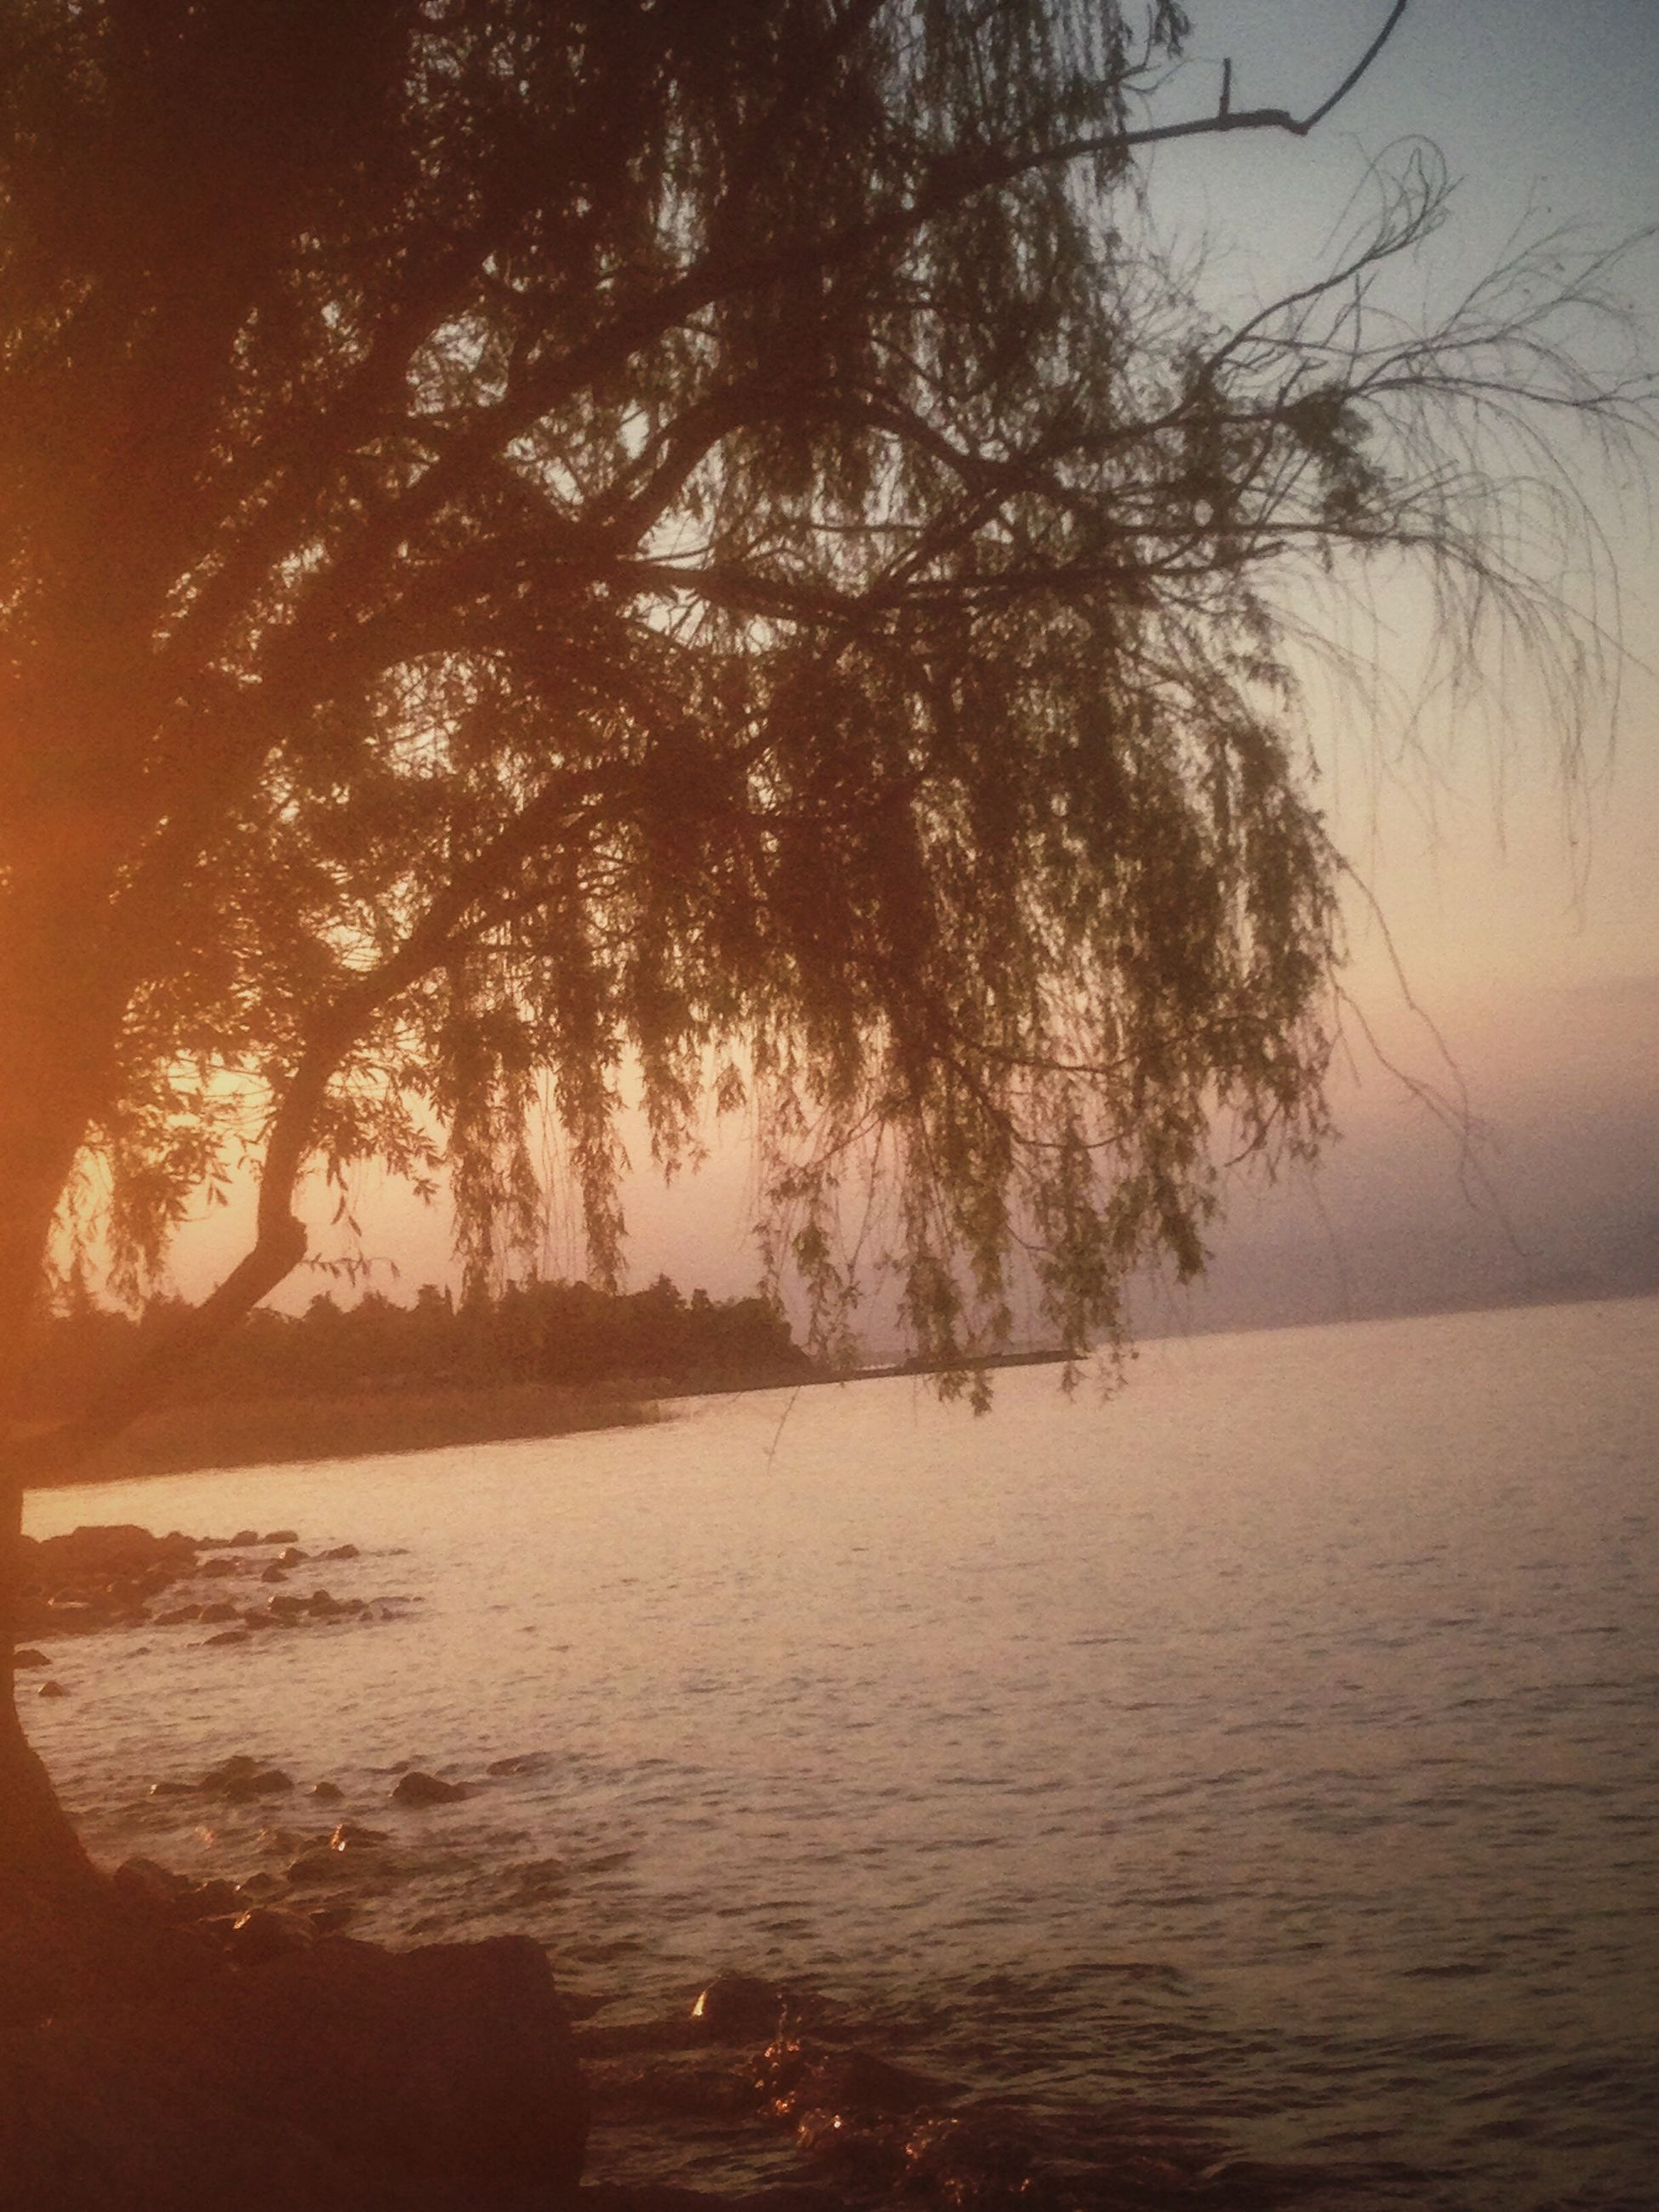 tree, water, tranquility, tranquil scene, scenics, lake, nature, beauty in nature, calm, branch, lakeshore, sky, sea, outdoors, day, non-urban scene, growth, remote, riverbank, solitude, no people, shore, majestic, lakeside